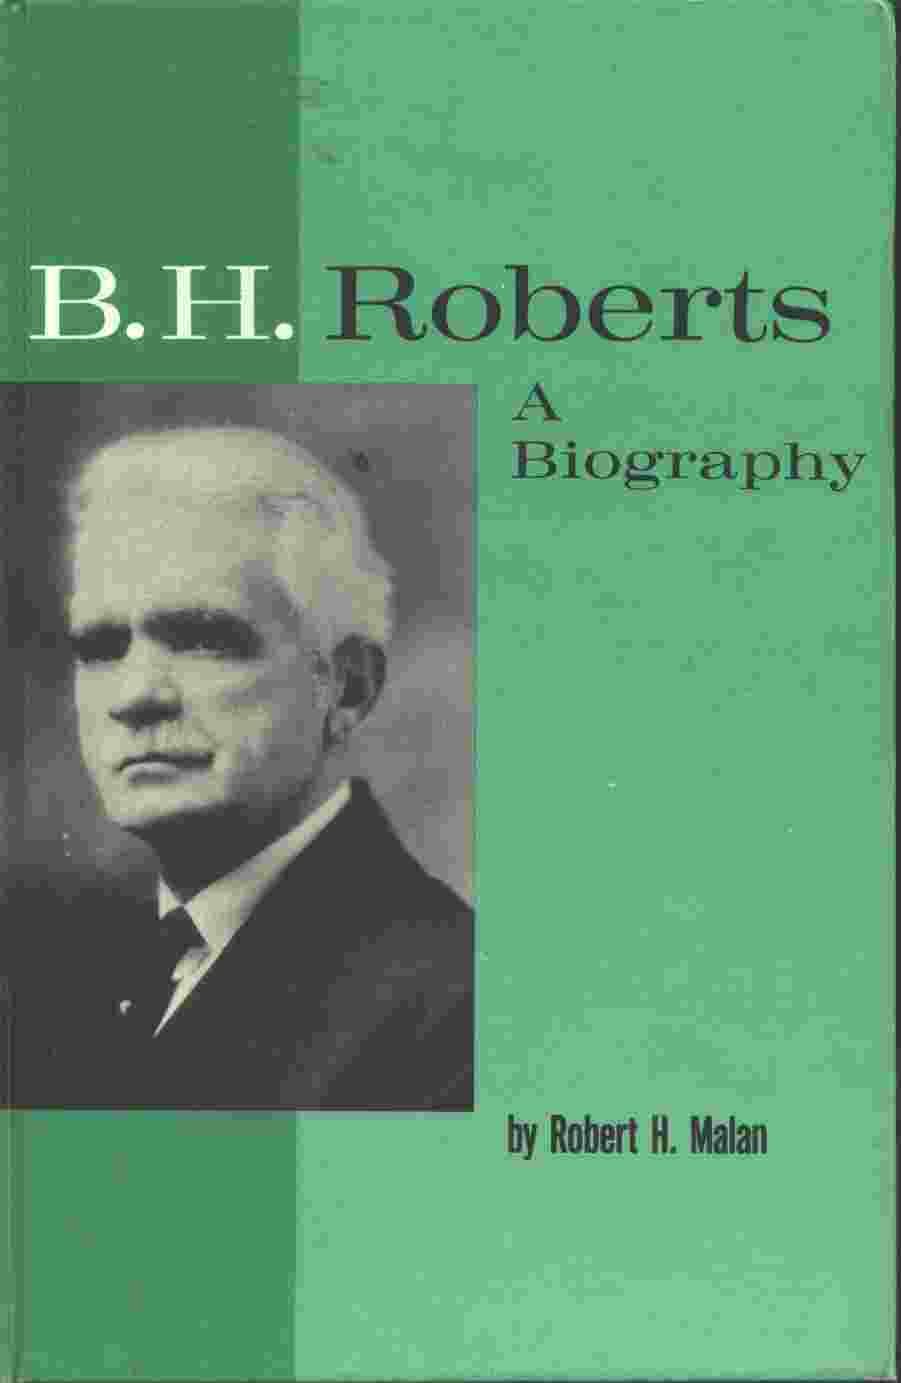 Image for B.H. ROBERTS - A BIOGRAPHY